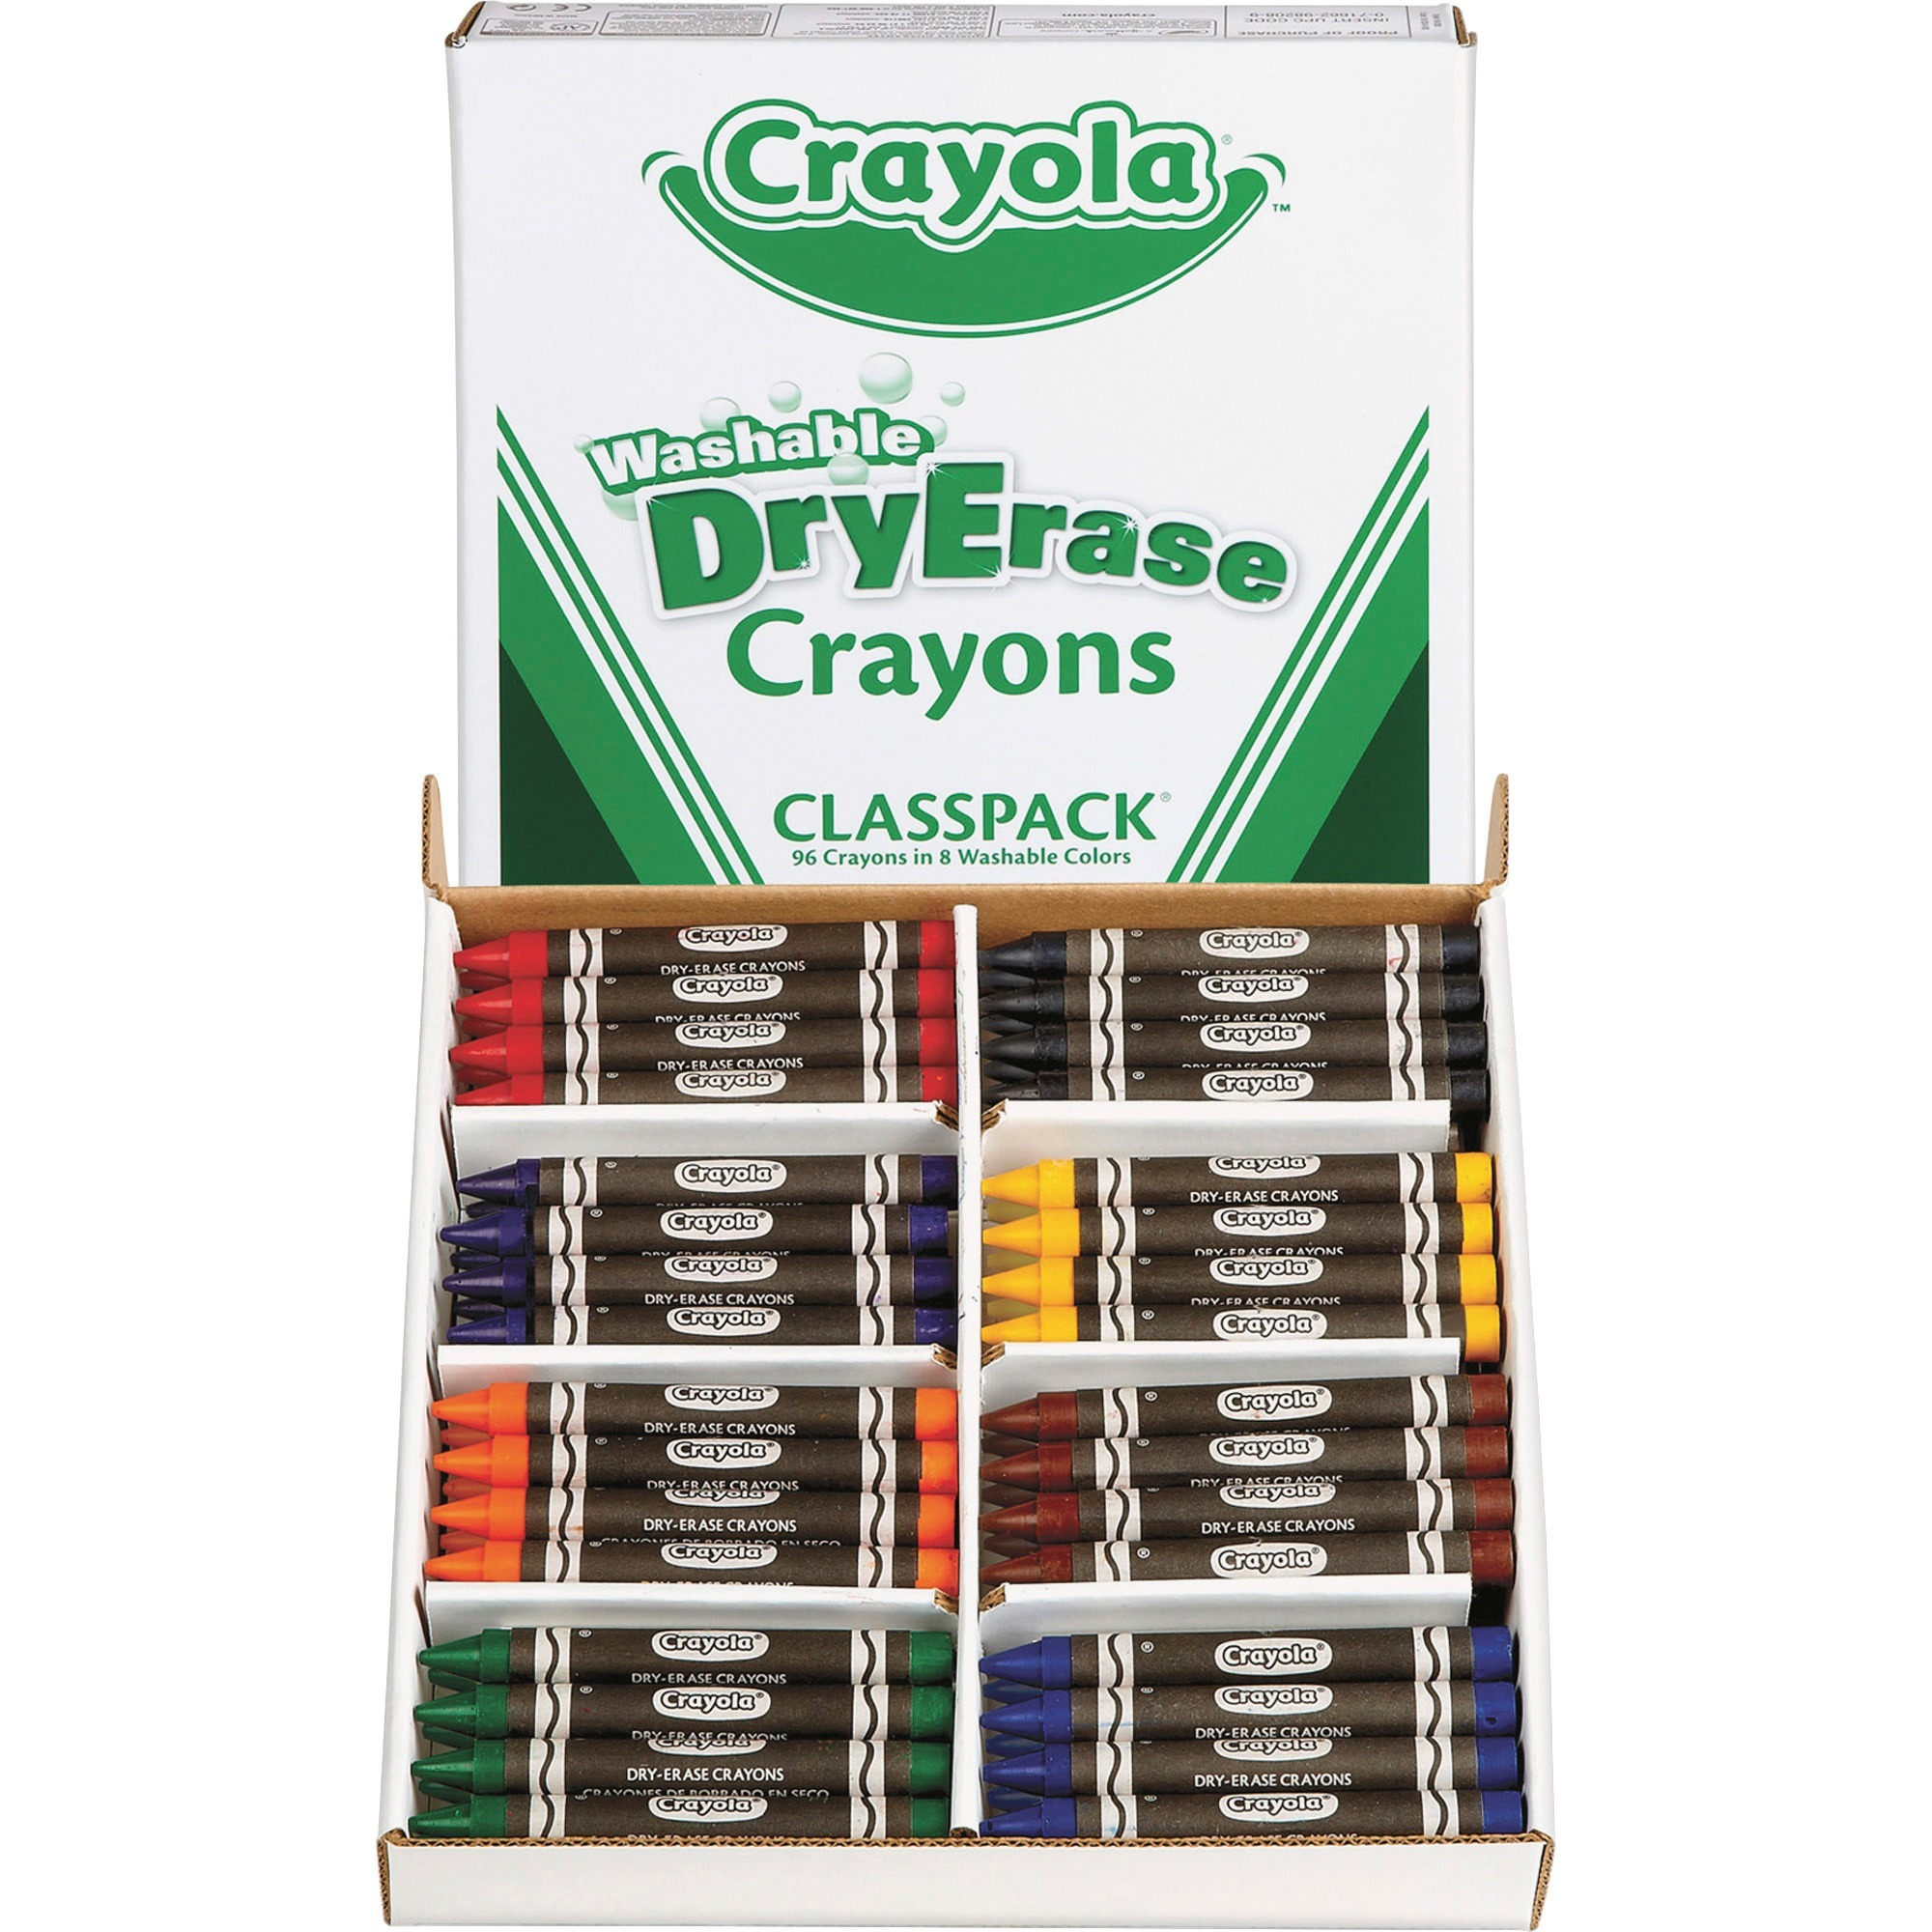 Crayola Washable Dry Erase Crayons, Classpack, Assorted Colors, 96 Count